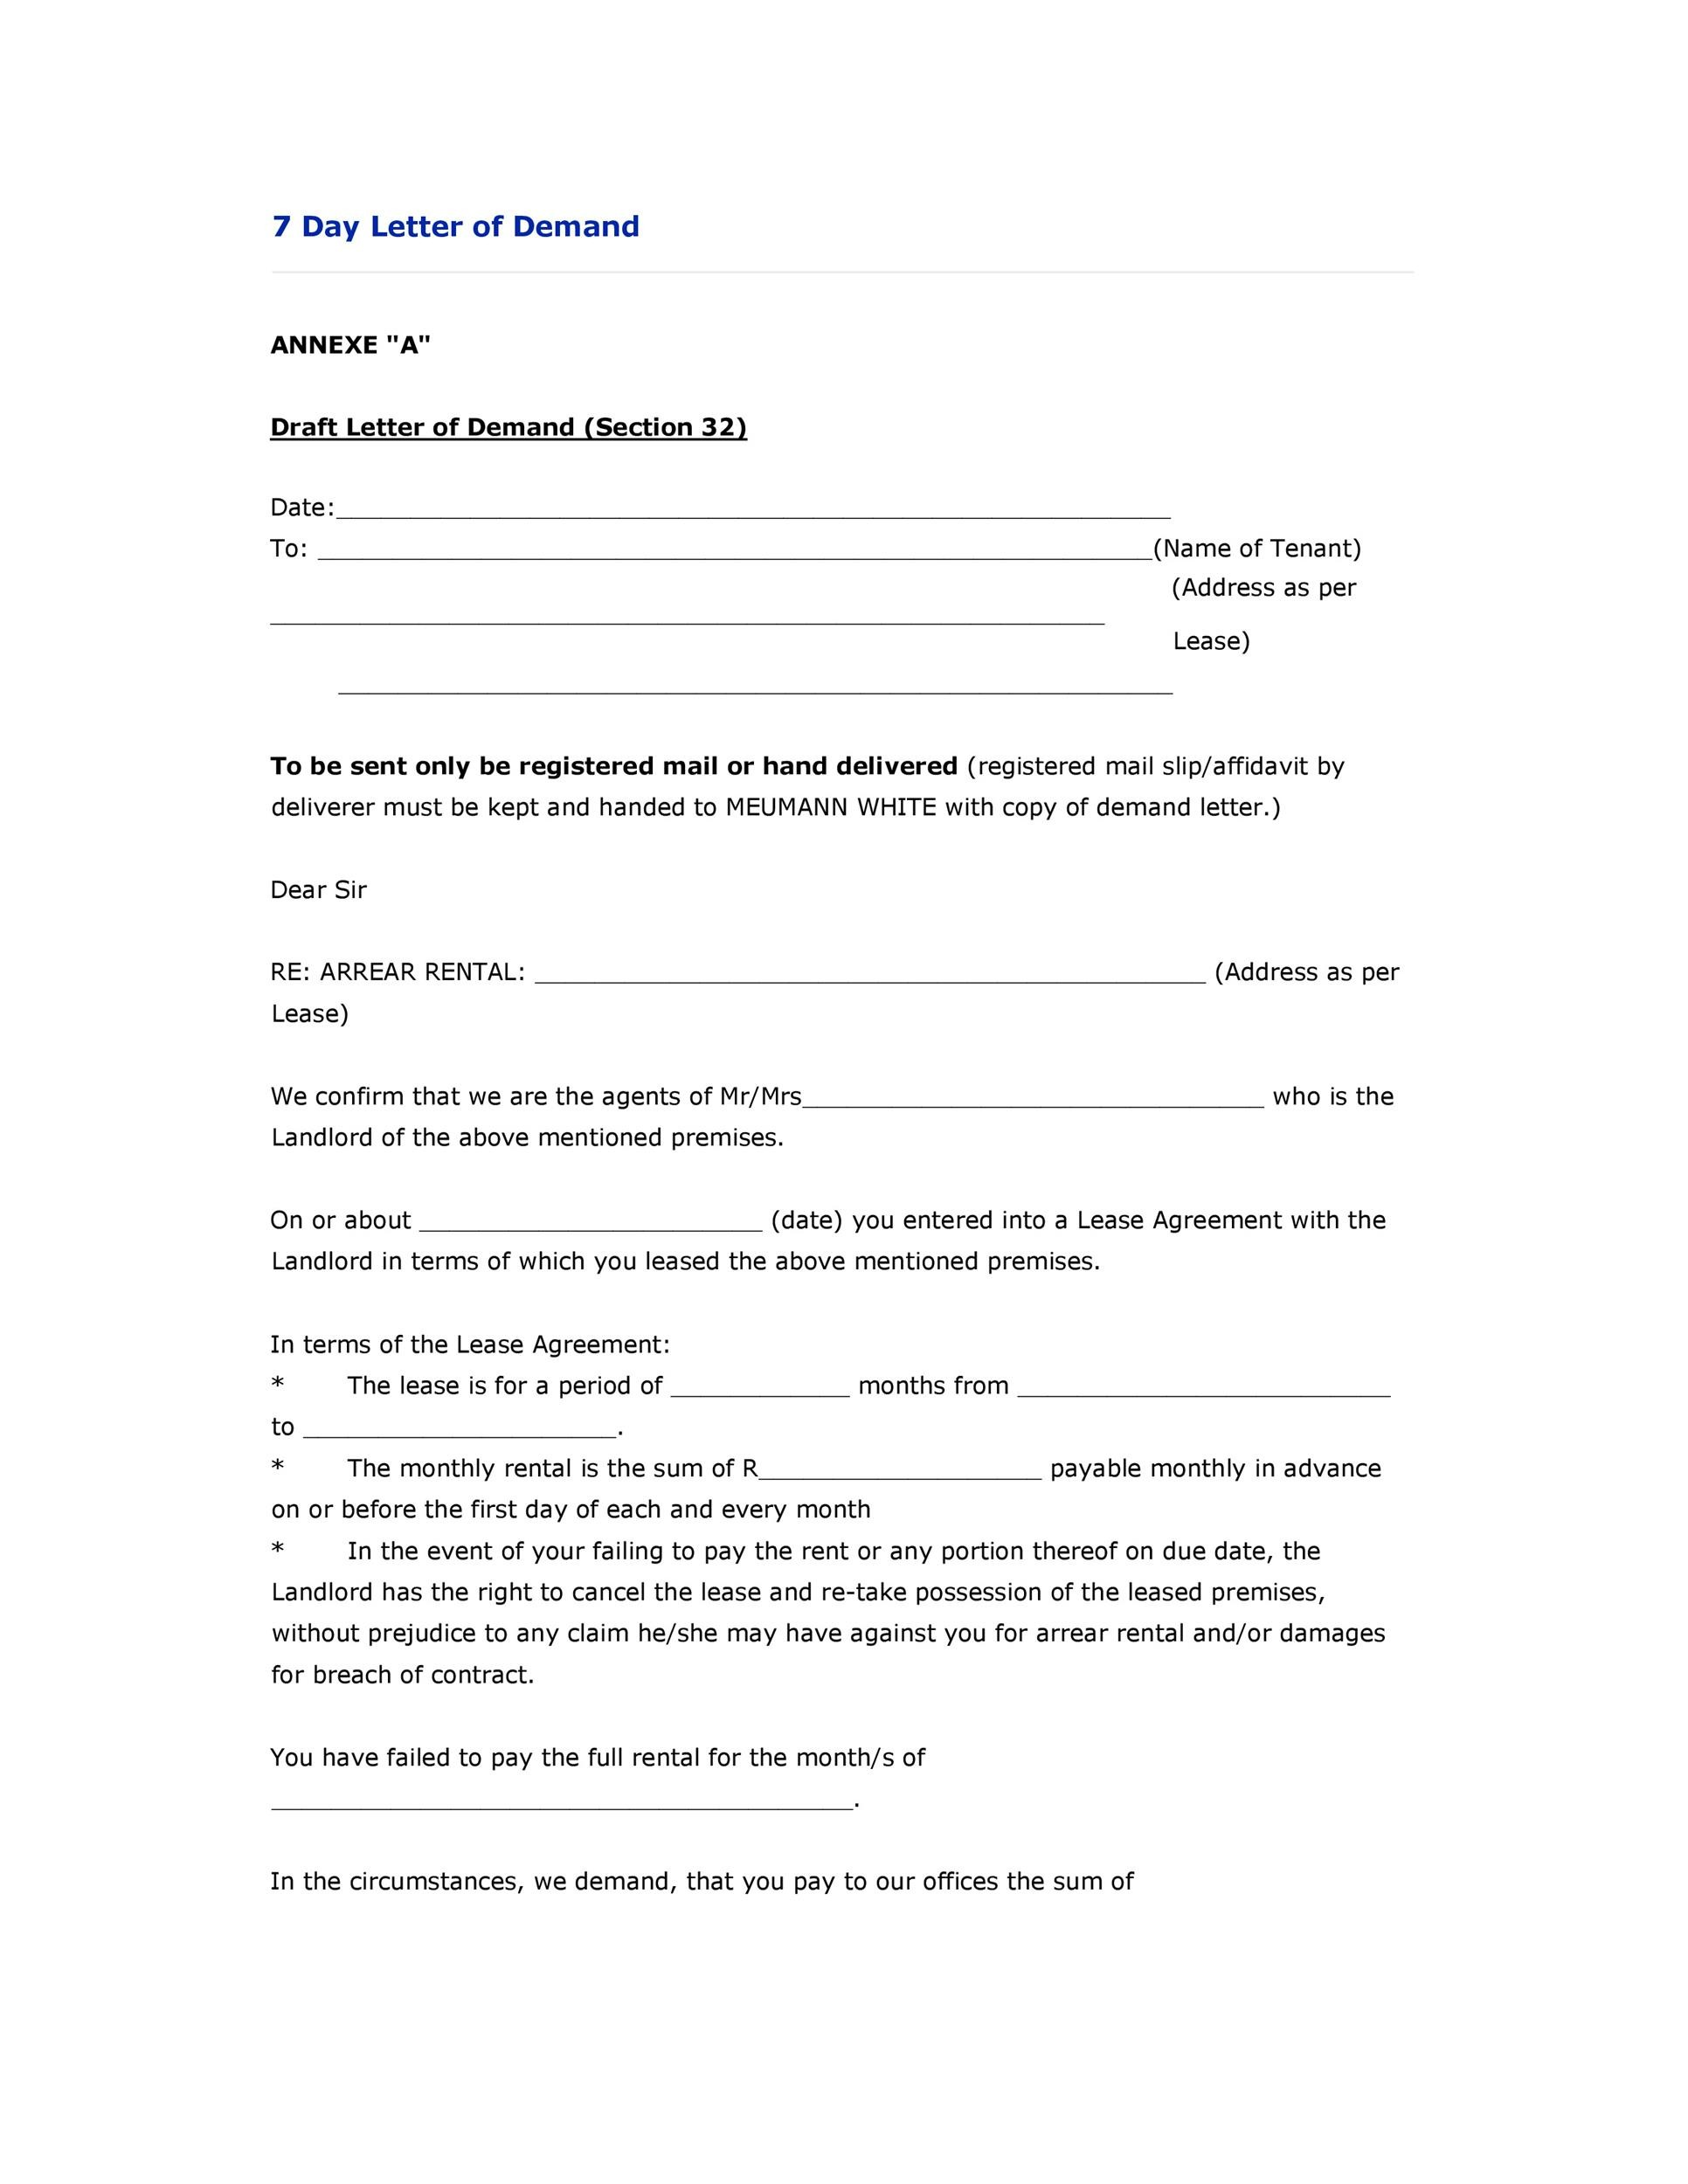 Demand-Letter-Template-22  Day Demand Letter Template To Return Auto Mobile on